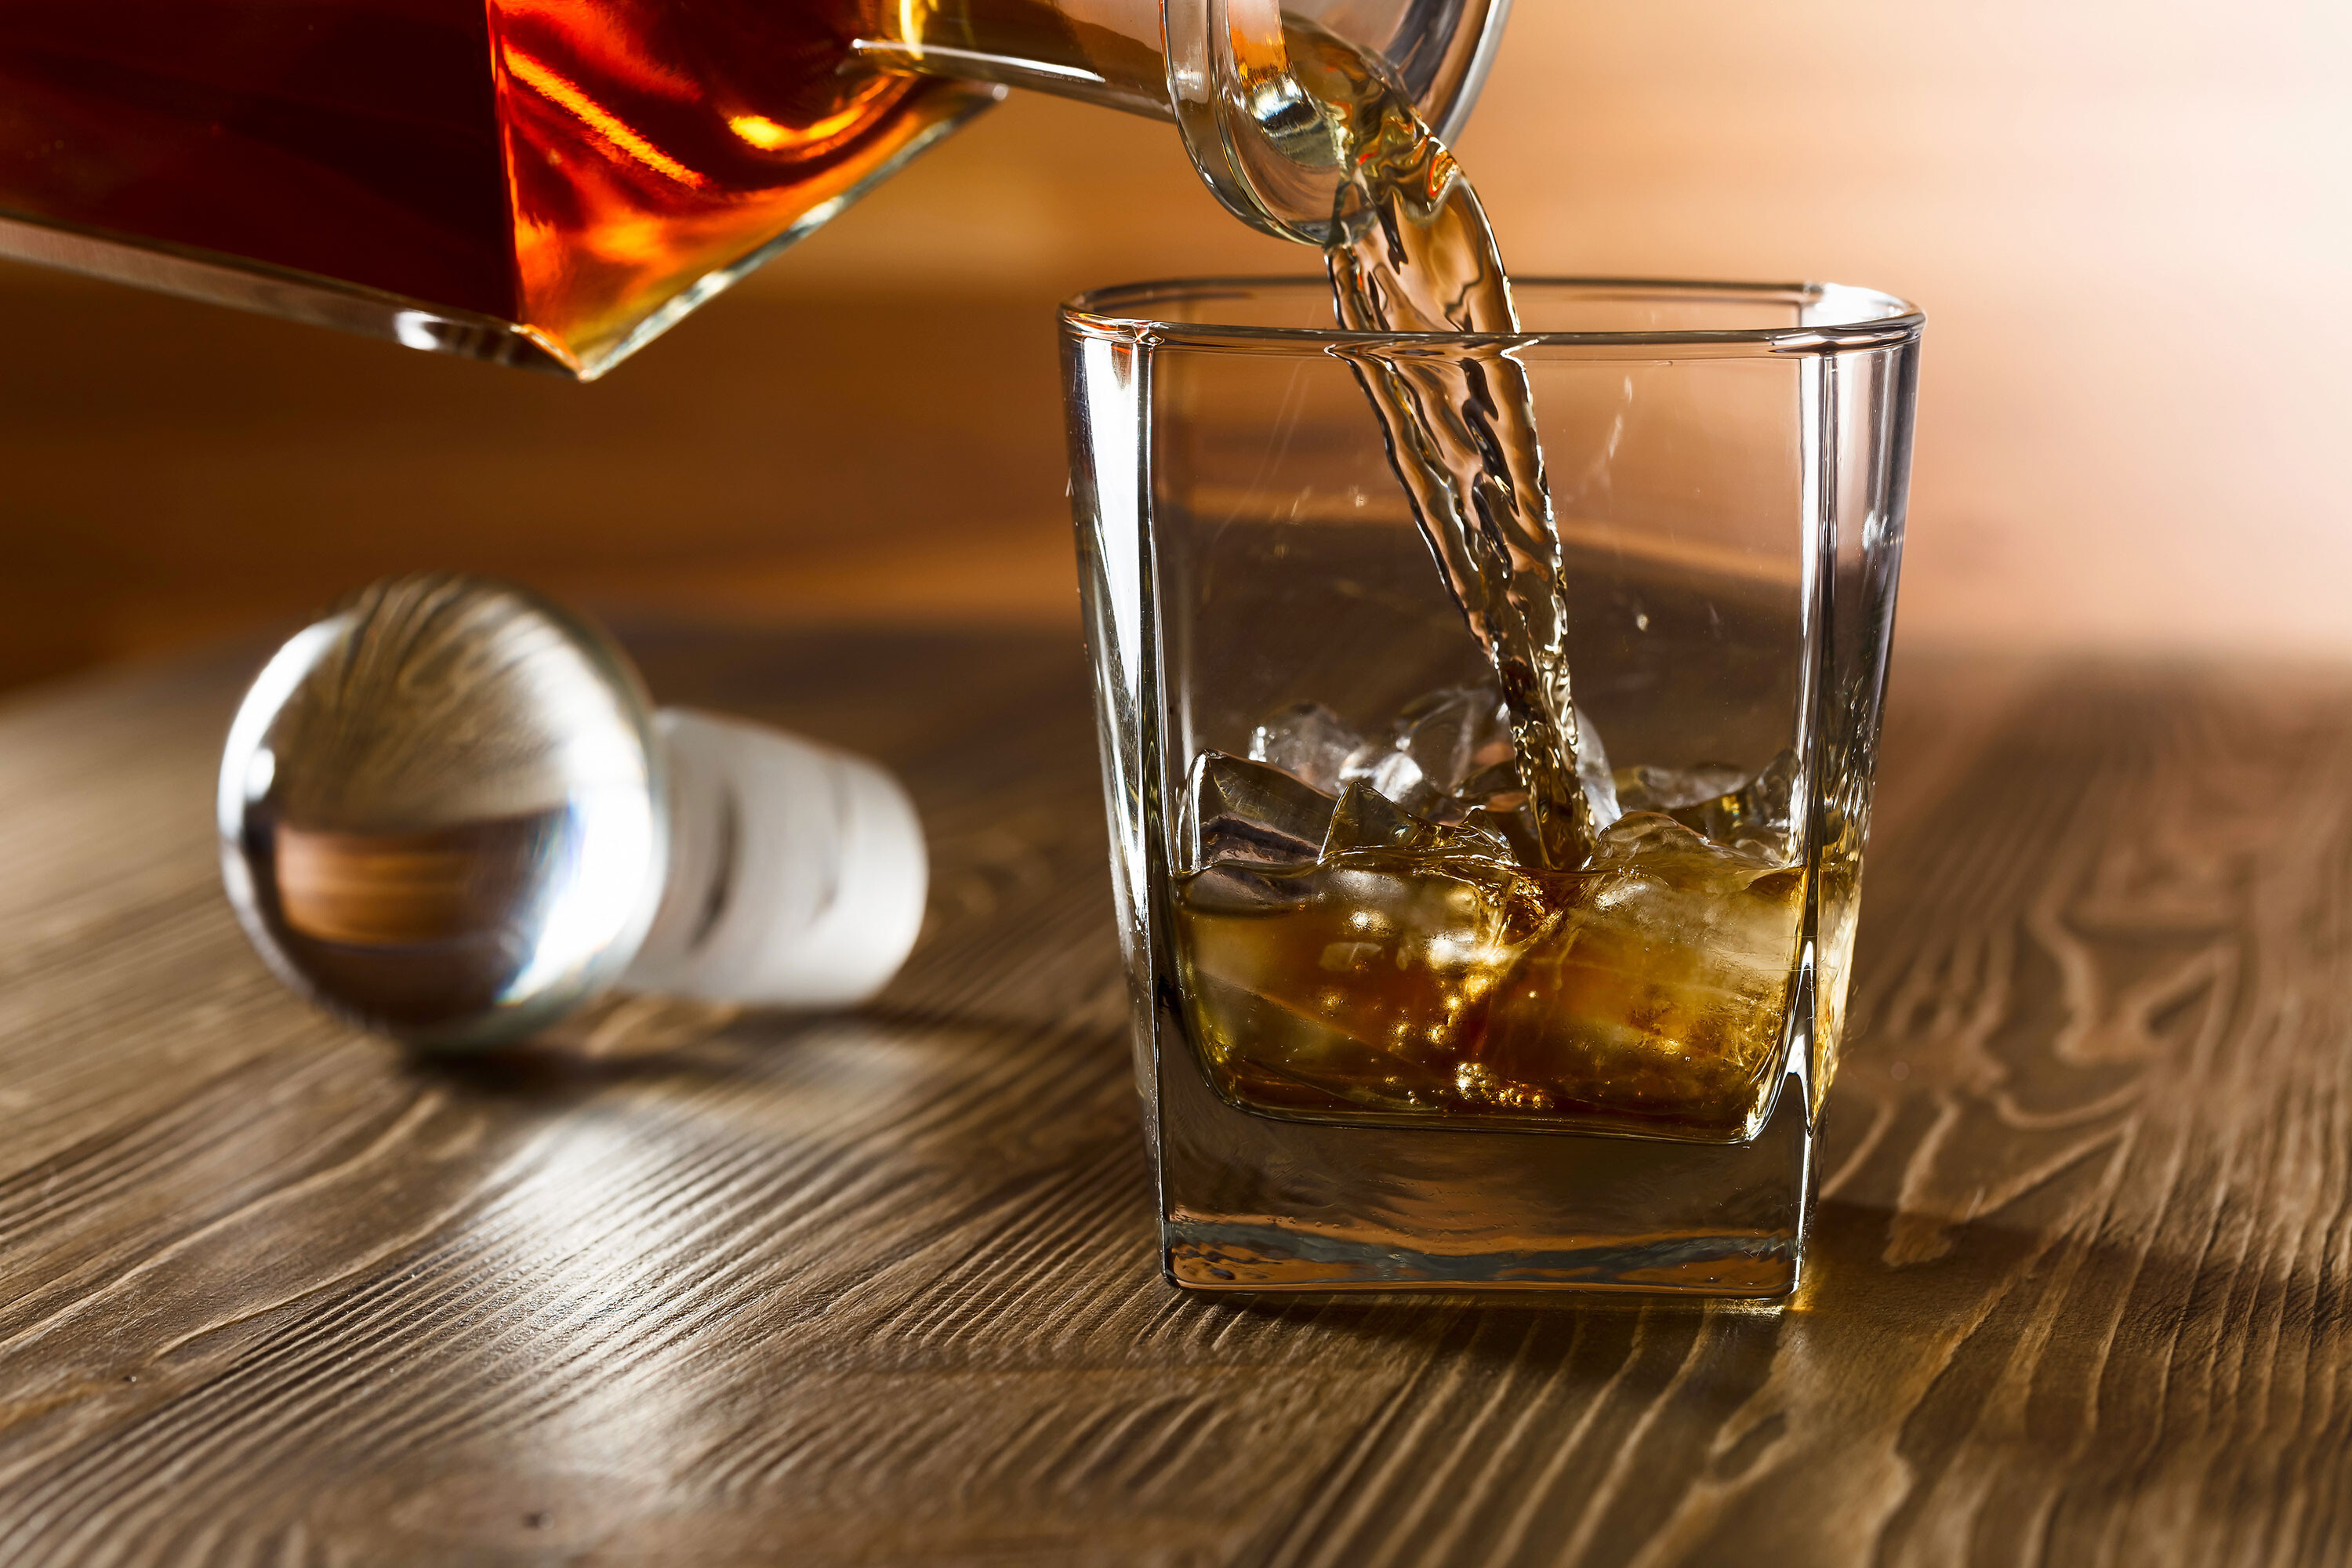 Need for liver transplants due to heavy drinking soared during the pandemic, study finds